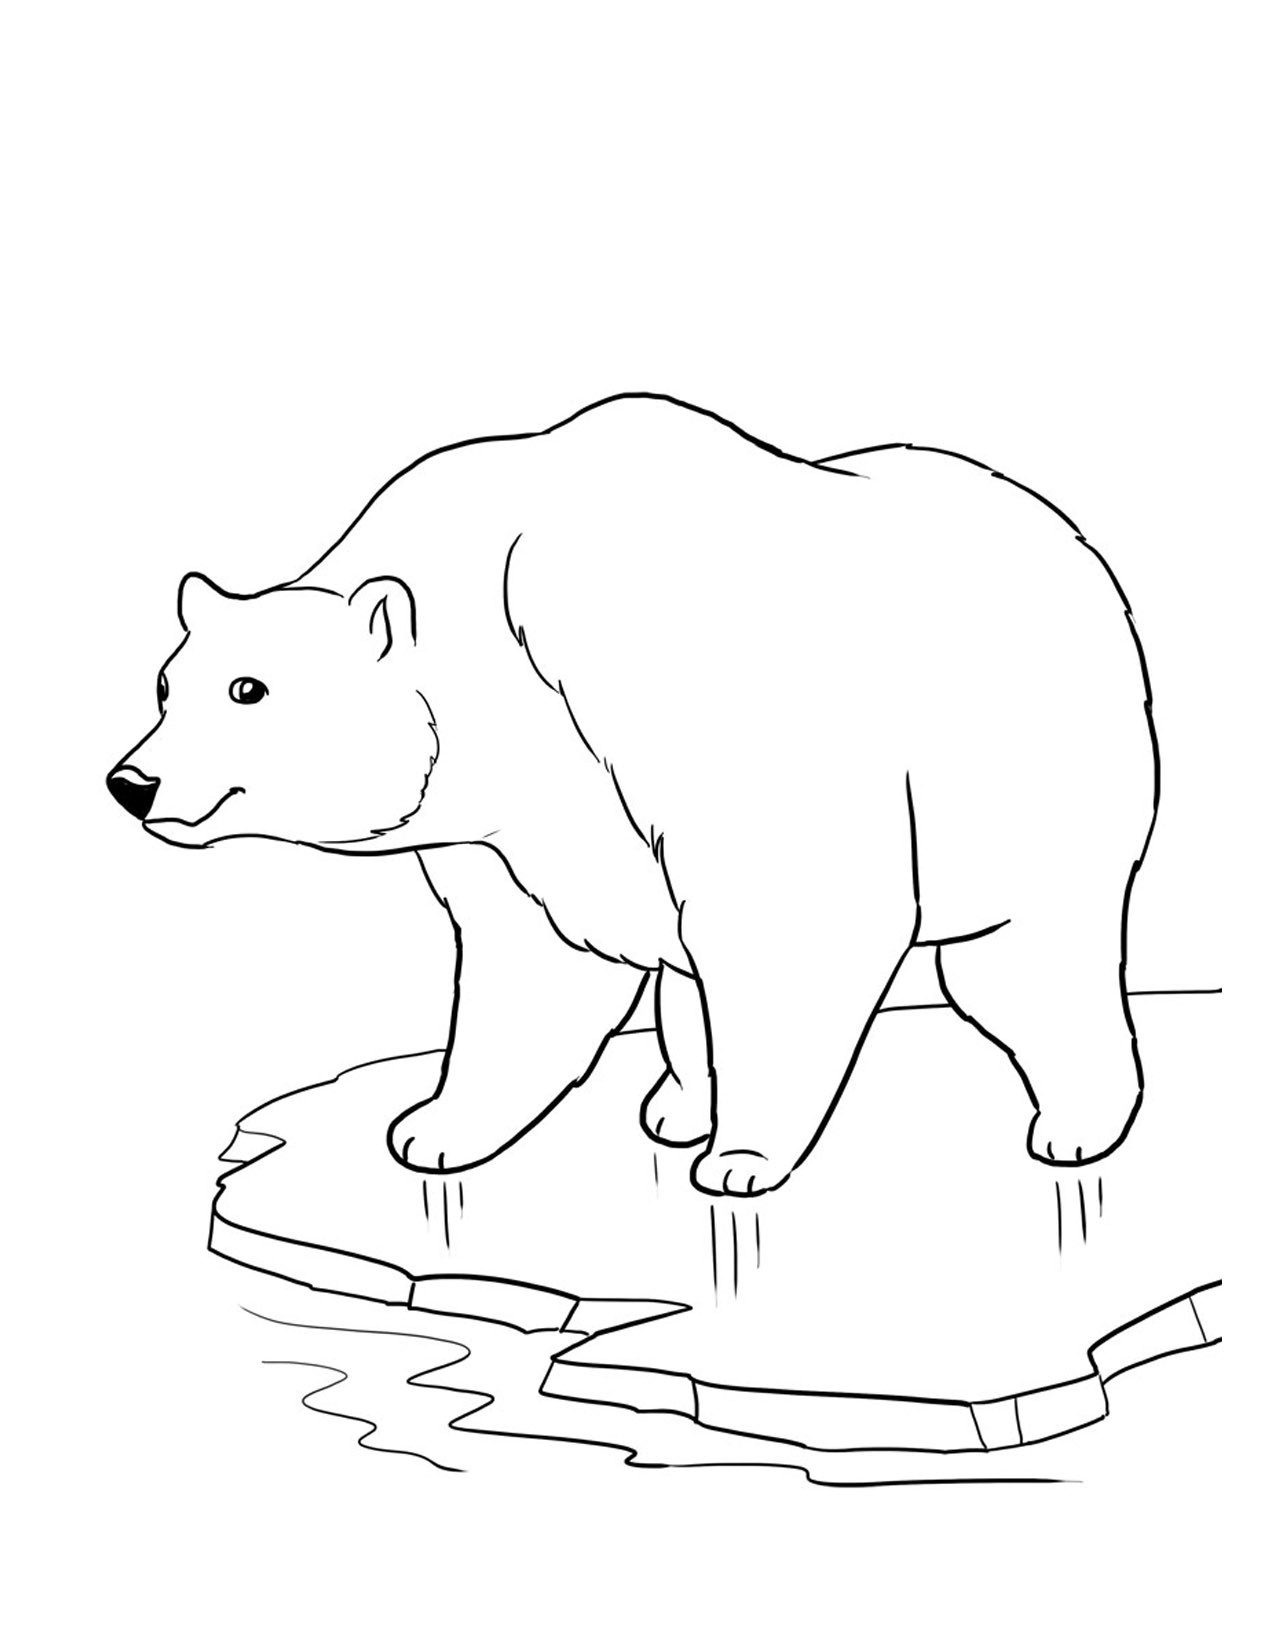 Free Coloring Pages Of Polar Bears  Free Printable Bear Coloring Pages For Kids